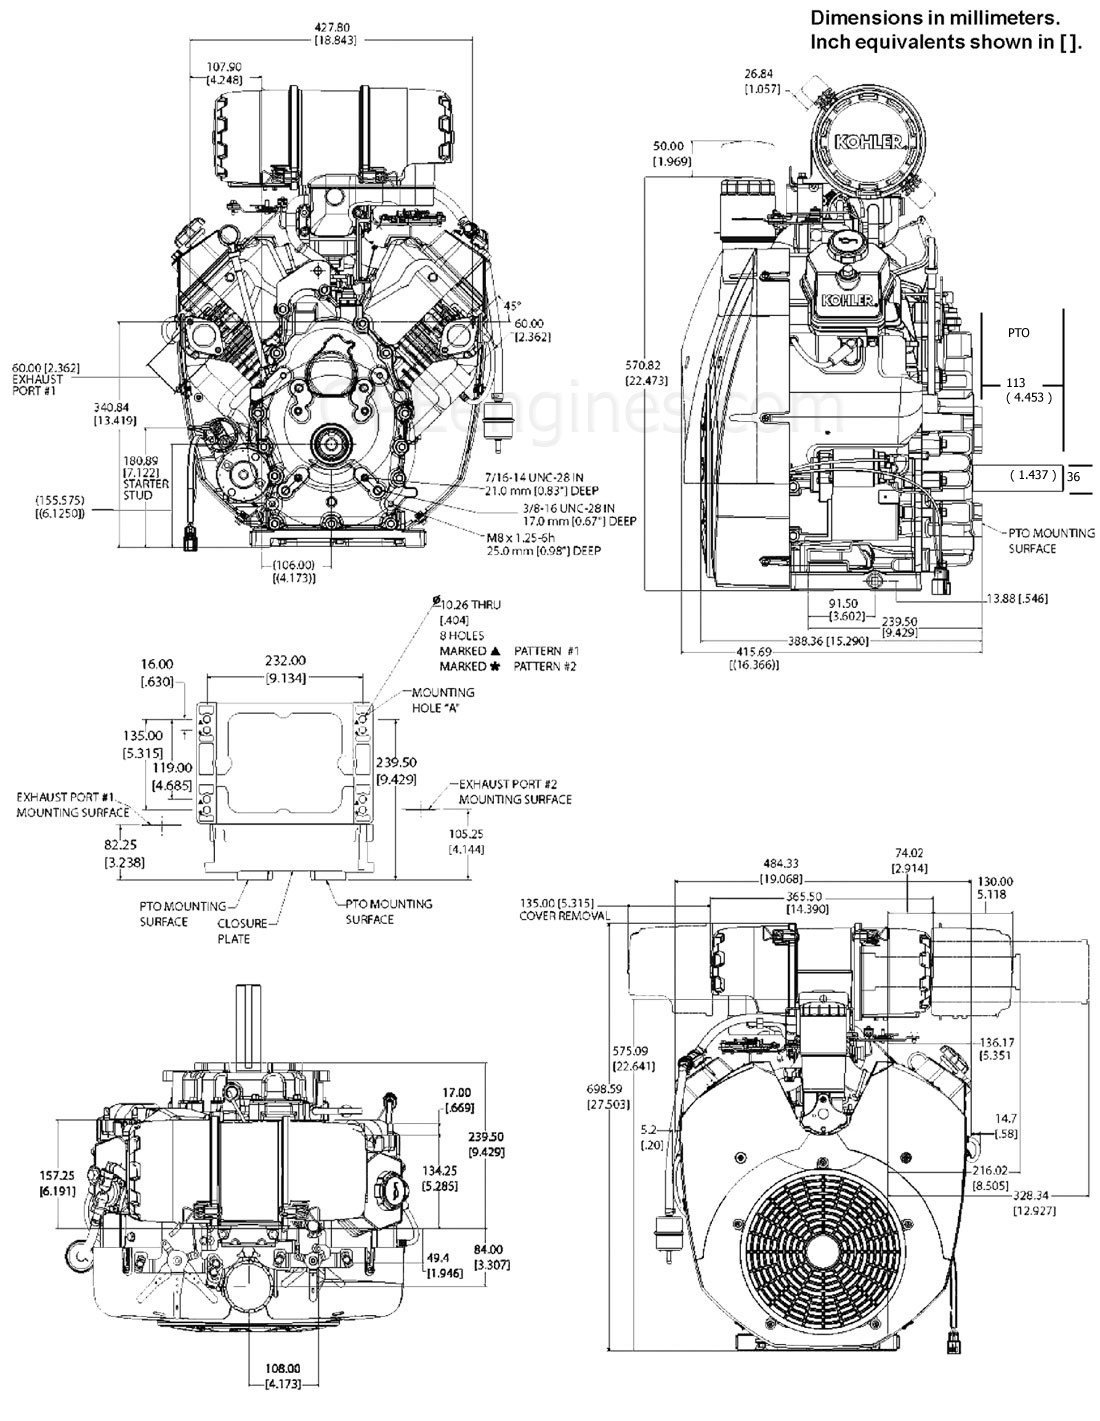 CH940 CH960 CH980 CH1000 DRAWINGS Kohler Engines and Parts Store – Kohler Cv490s Engine Diagram